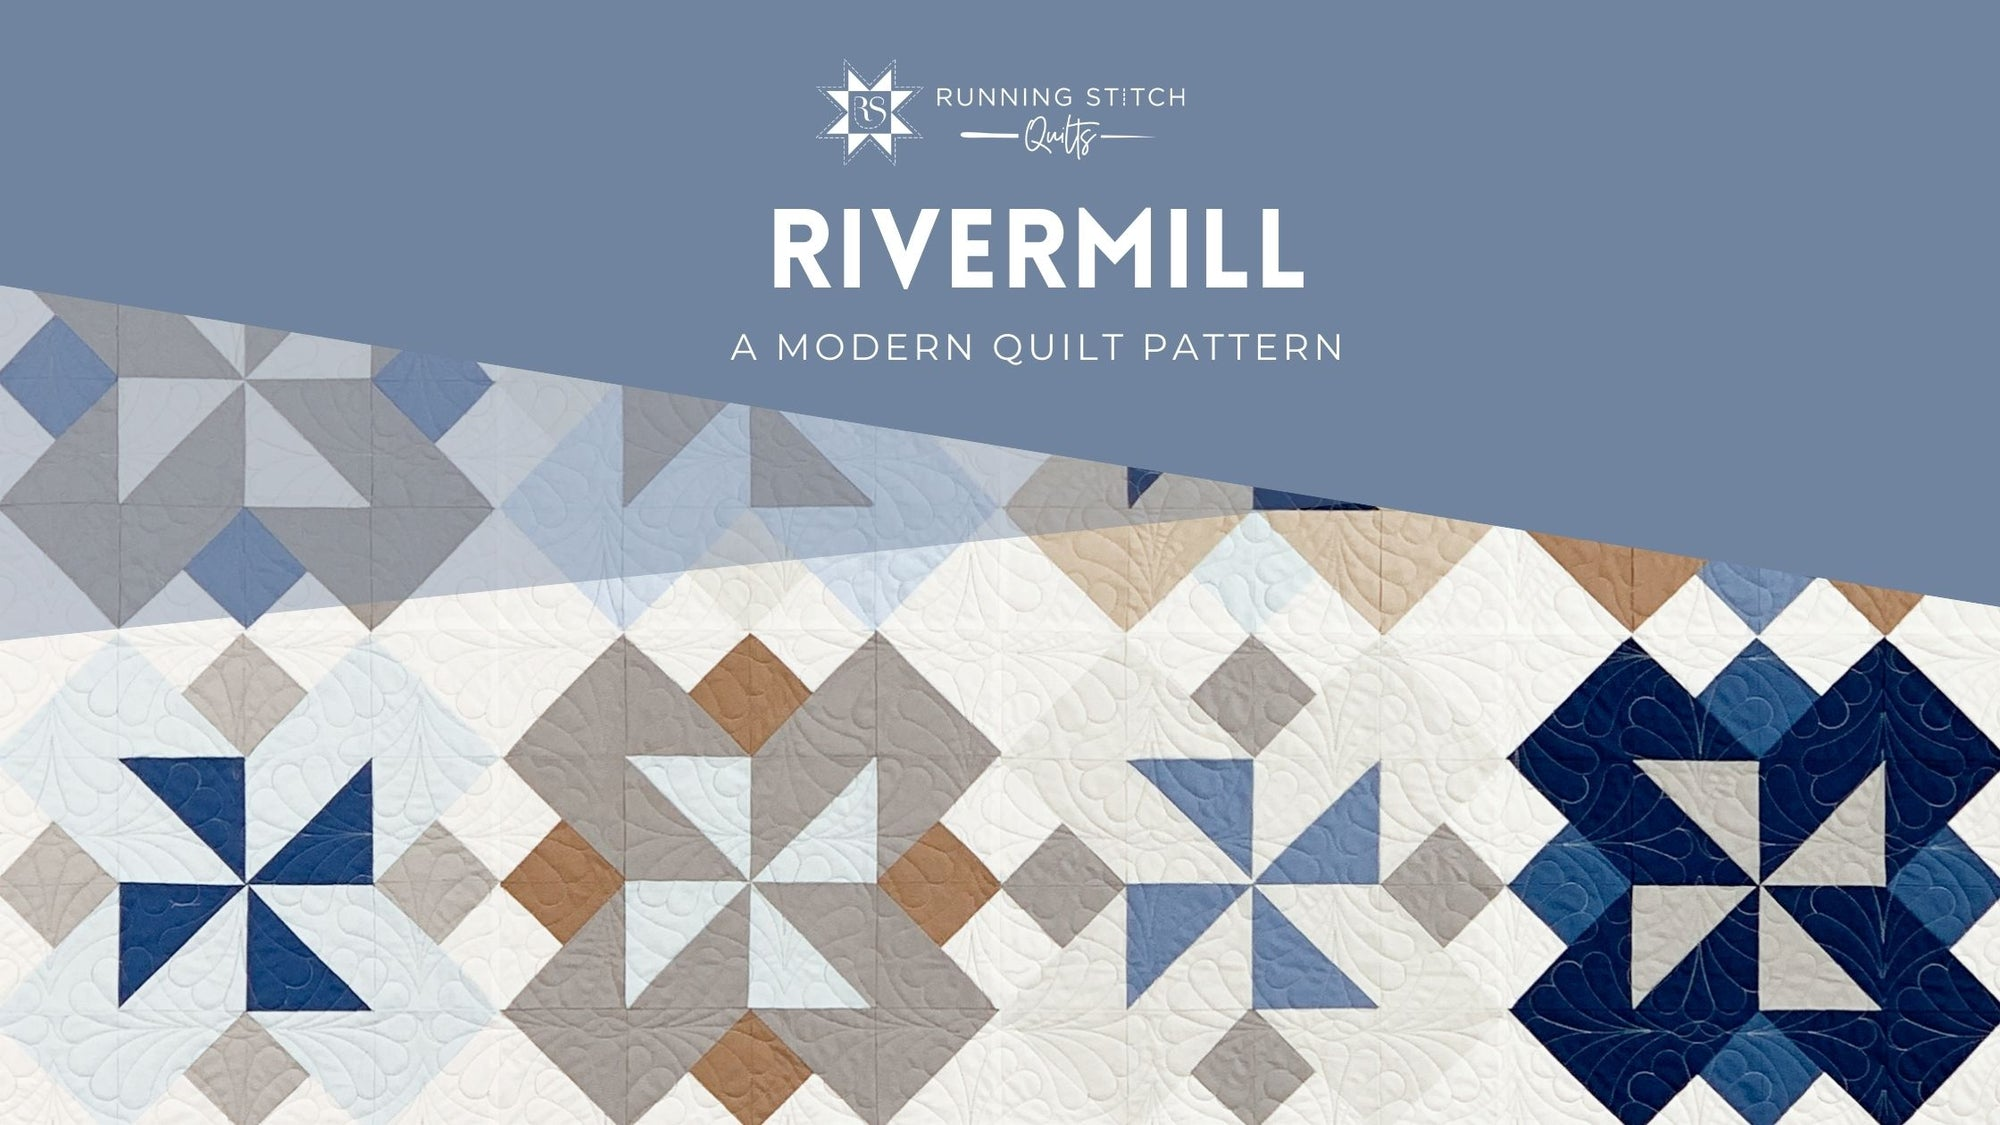 Rivermill Quilt Pattern - The Solids One